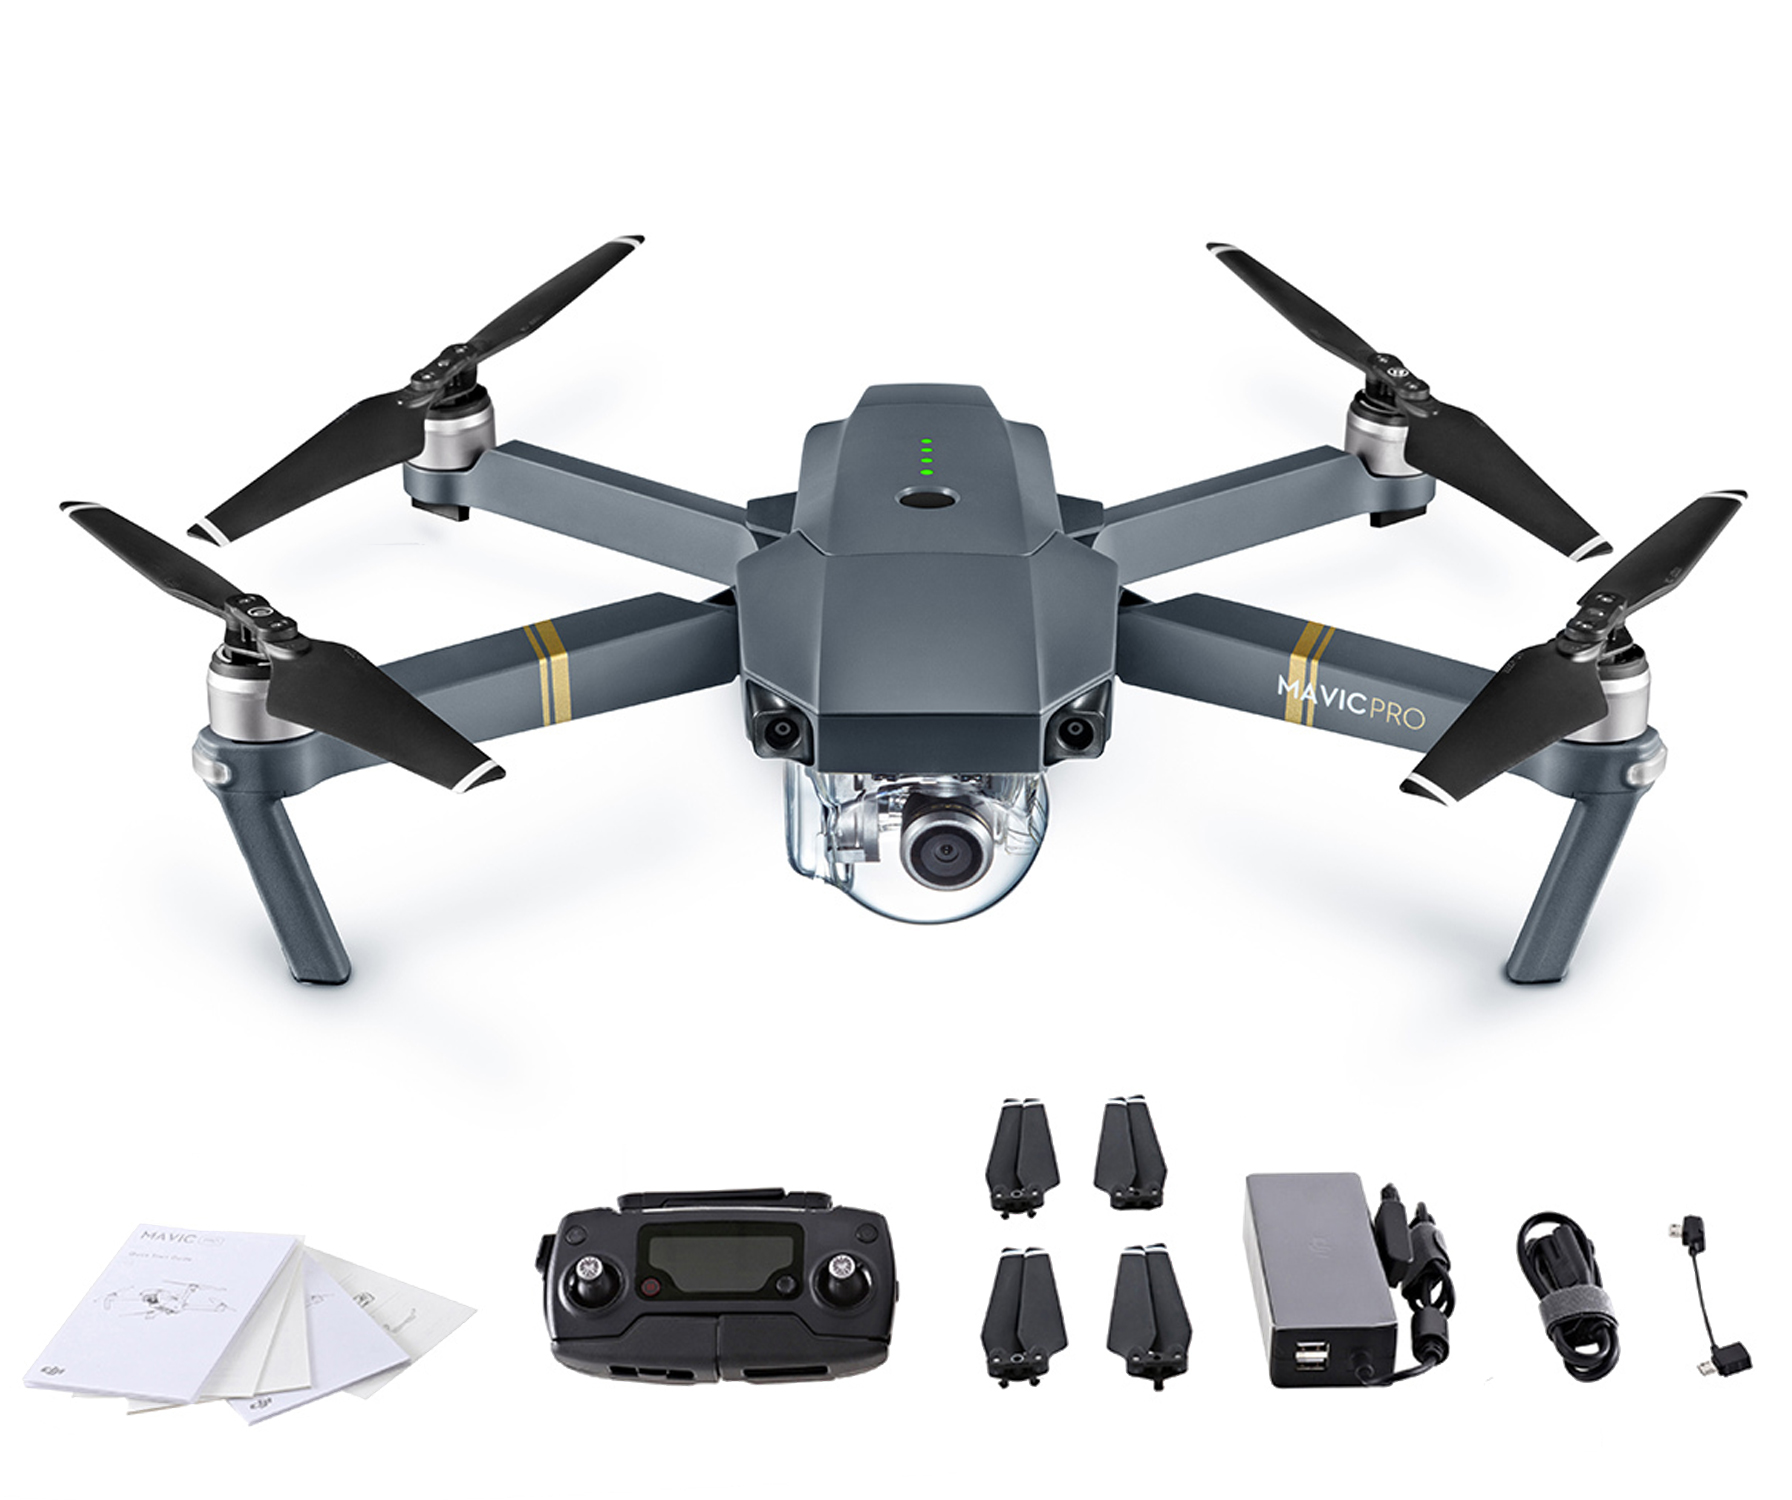 new drone law with Dji Mavic Pro  Pact Personal 4k Drone on Backlash Airport Naked Body Scans Groin Pat Downs Grows furthermore Concept Ship Art By Dorje Bellbrook in addition Us Navy Destroyers Ineffective Littoral Waters also What Are Some Ex les Of The Law Of Conservation Of Energy as well 878811 13.